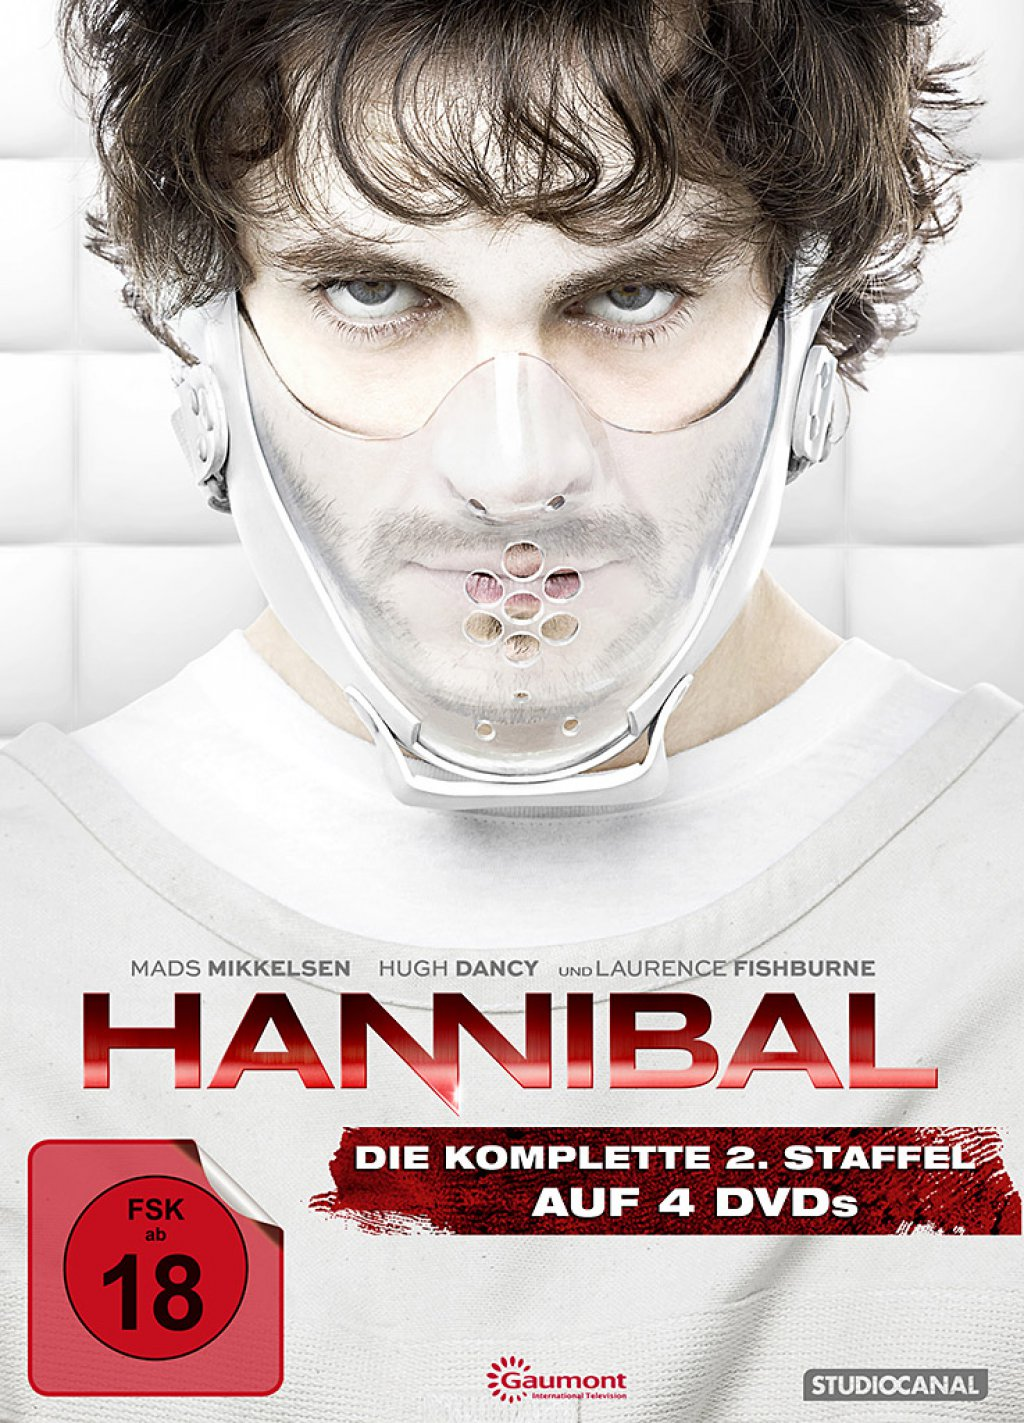 Hannibal - Staffel 02 (DVD)